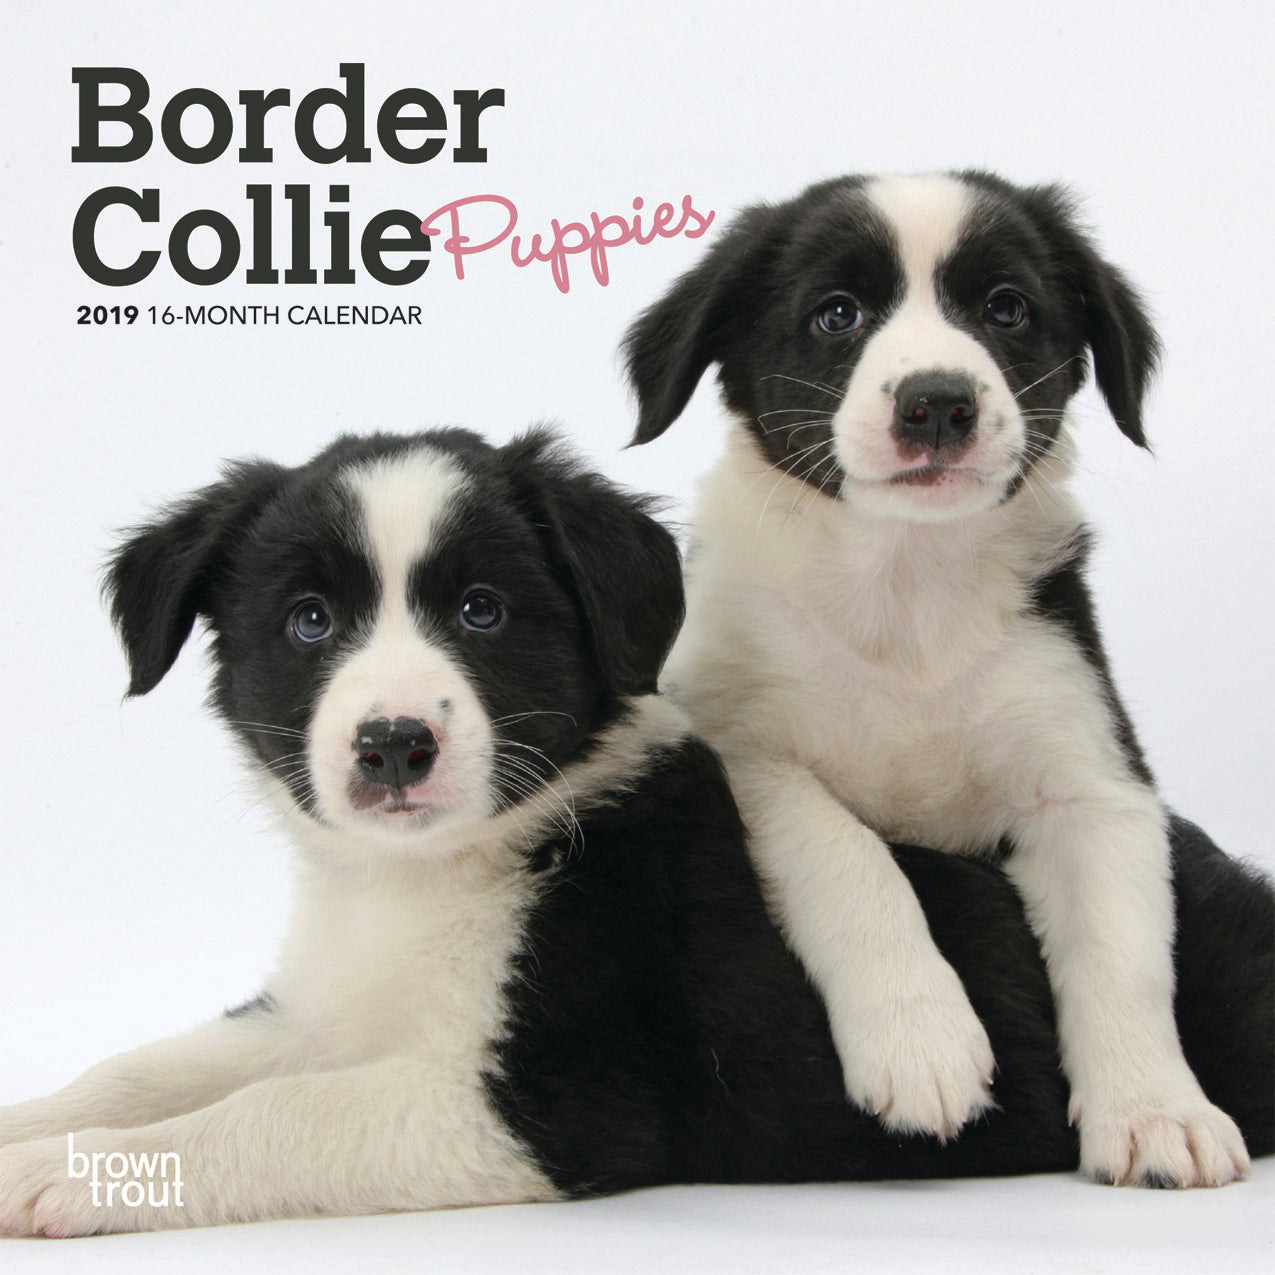 Border Collie Puppies 2019 Mini Wall Calendar